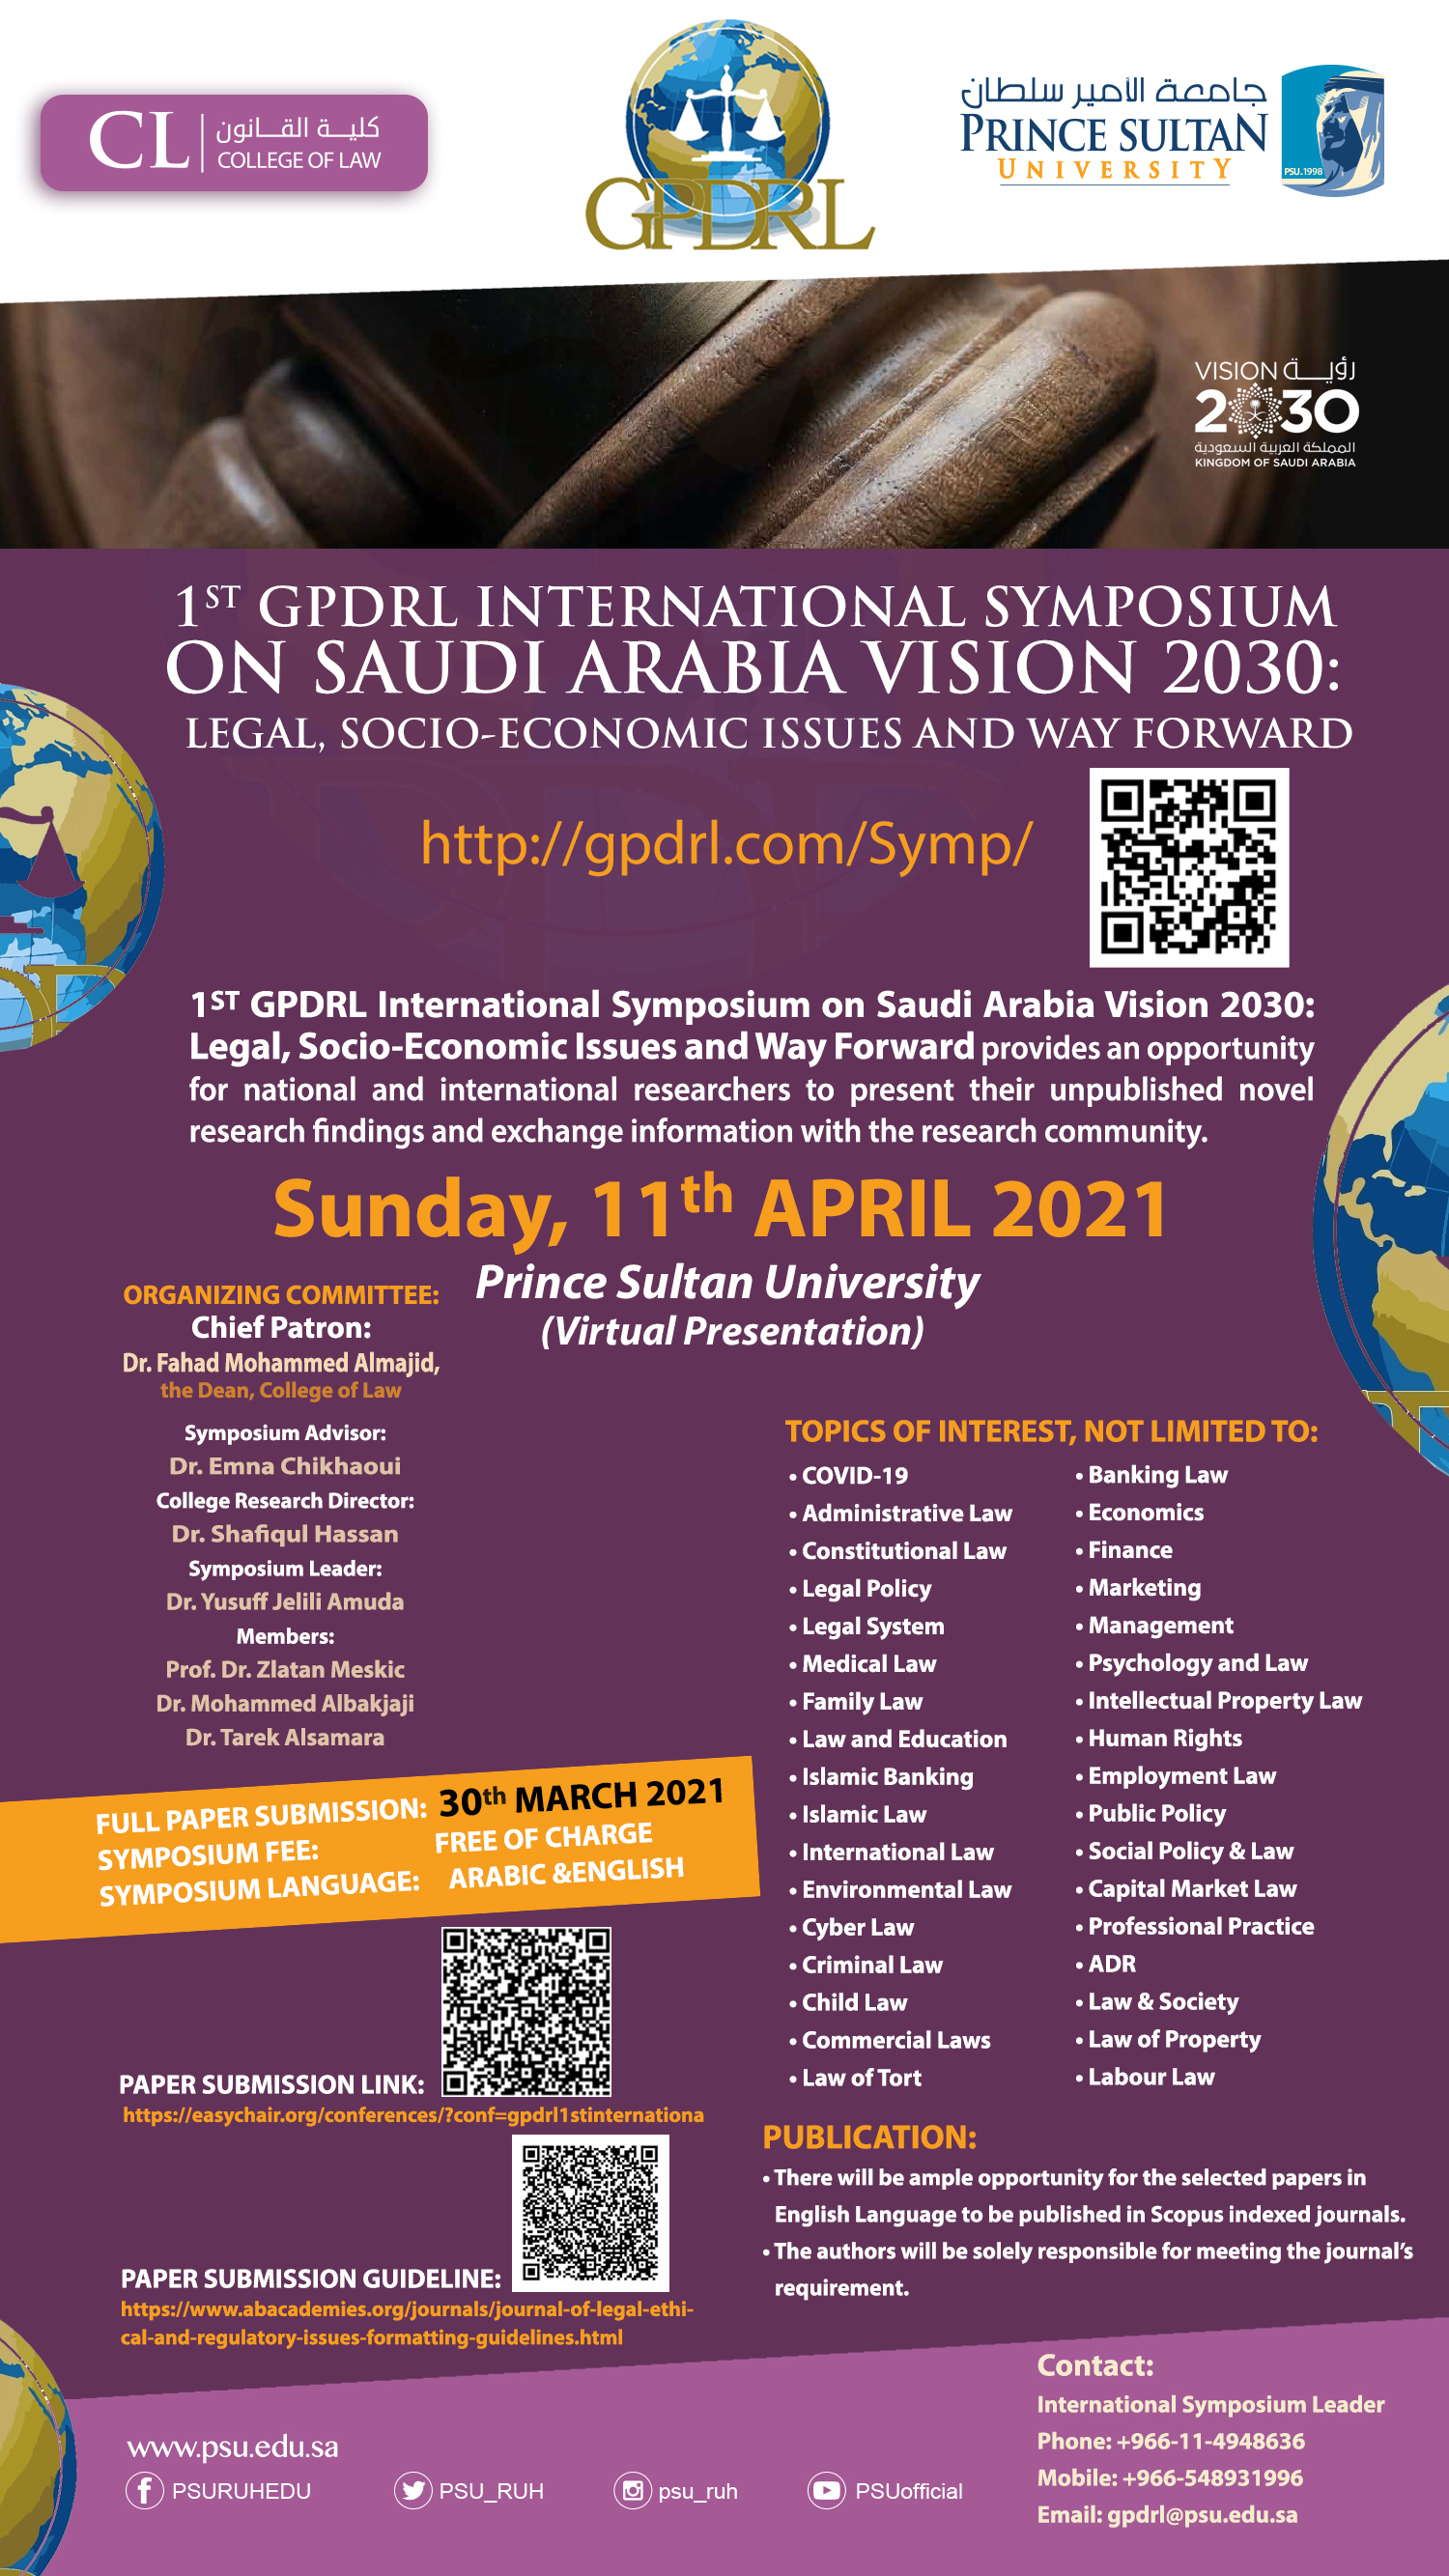 1st GDPRL International Symposium on Saudi Arabia VISION 2030 : Legal, Socio-economic issues and way forward